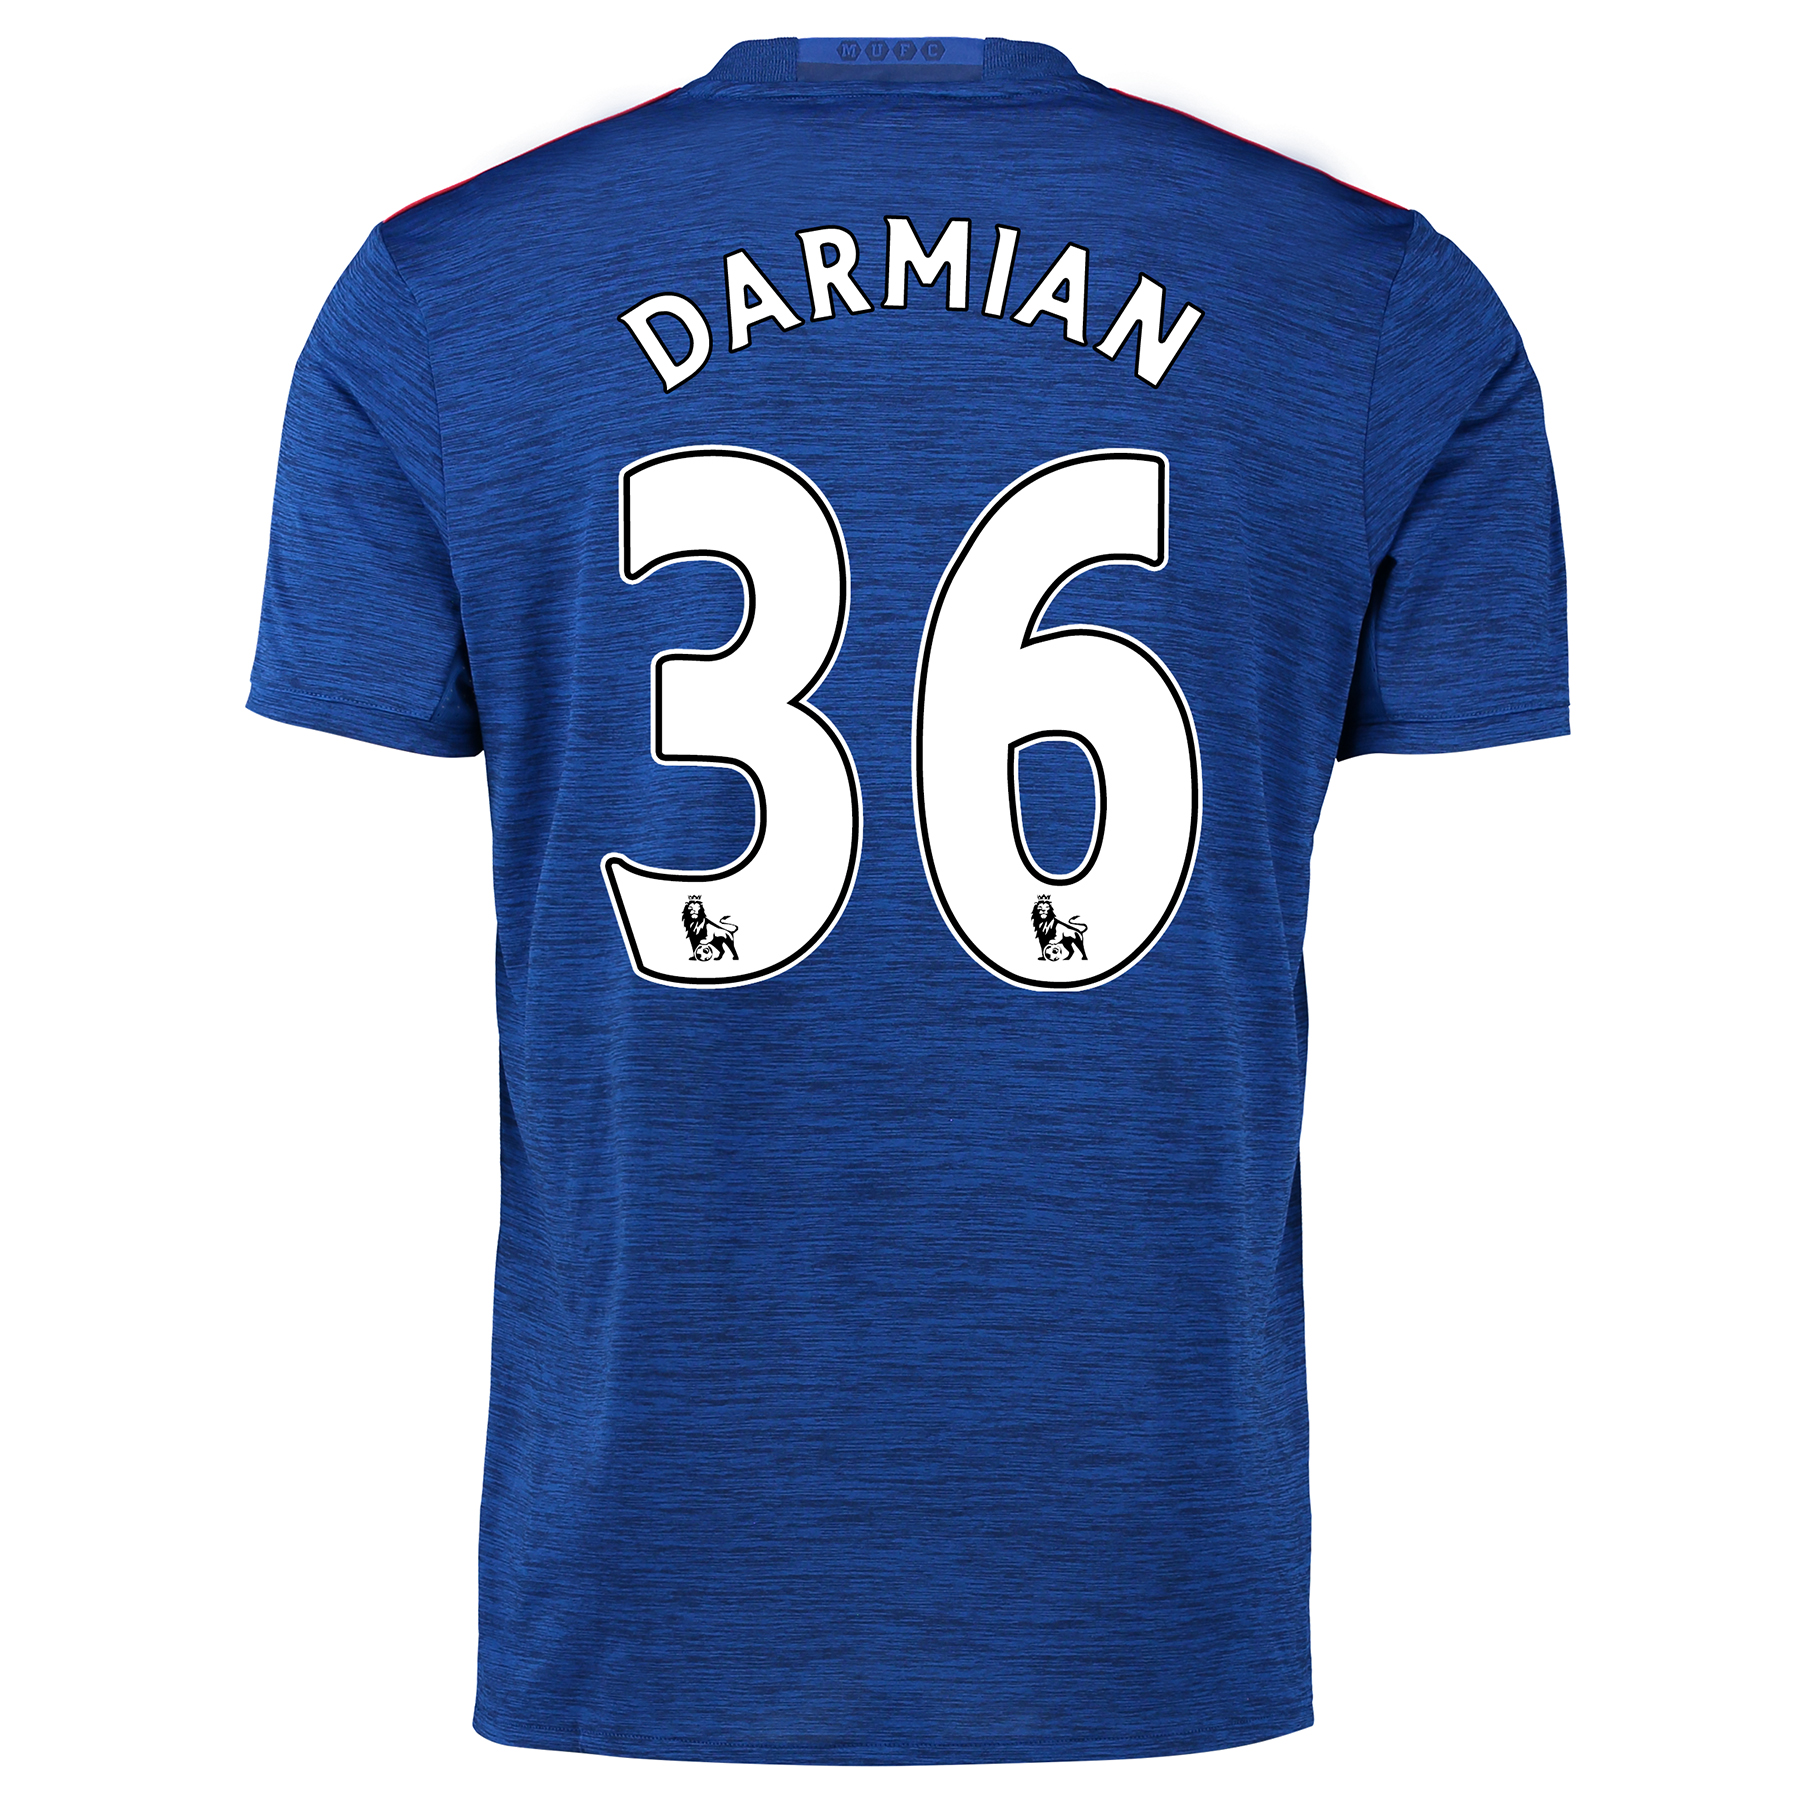 Manchester United Away Shirt 2016-17 with Darmian 36 printing